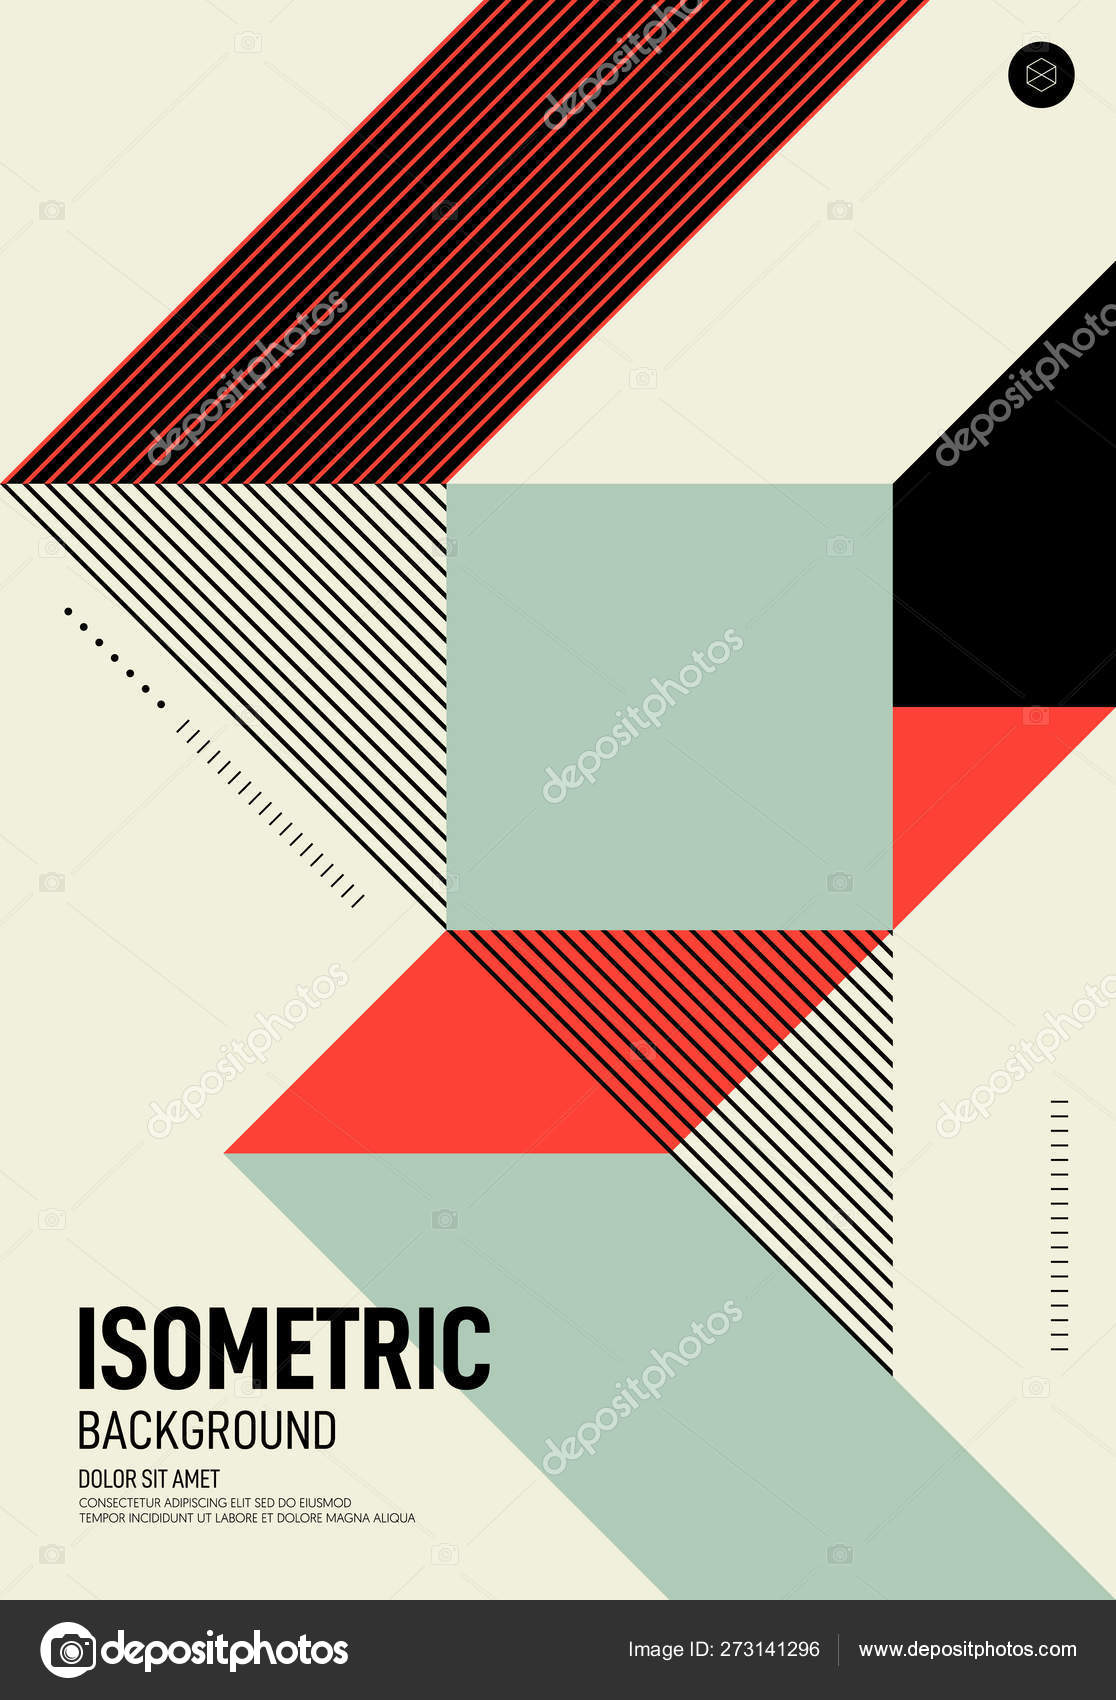 Abstract Isometric Geometric Shape Layout Poster Design Template Background Stock Vector C Thenatchdl 273141296,Abstract Geometric Line Design